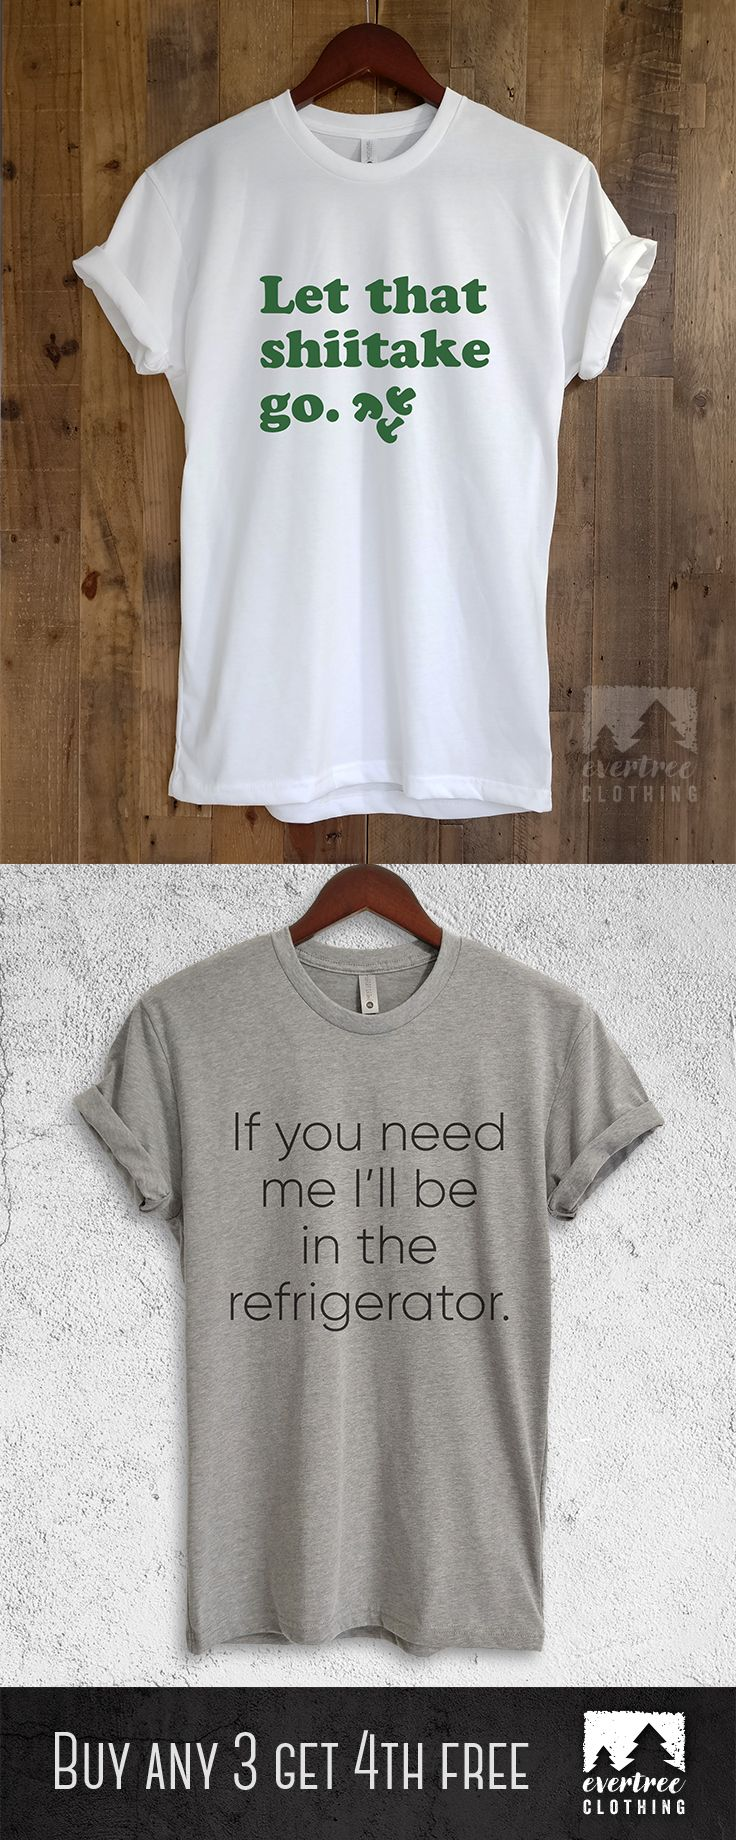 Funny T shirts & Tank Tops for Everyday Wear. Soft & Stylish